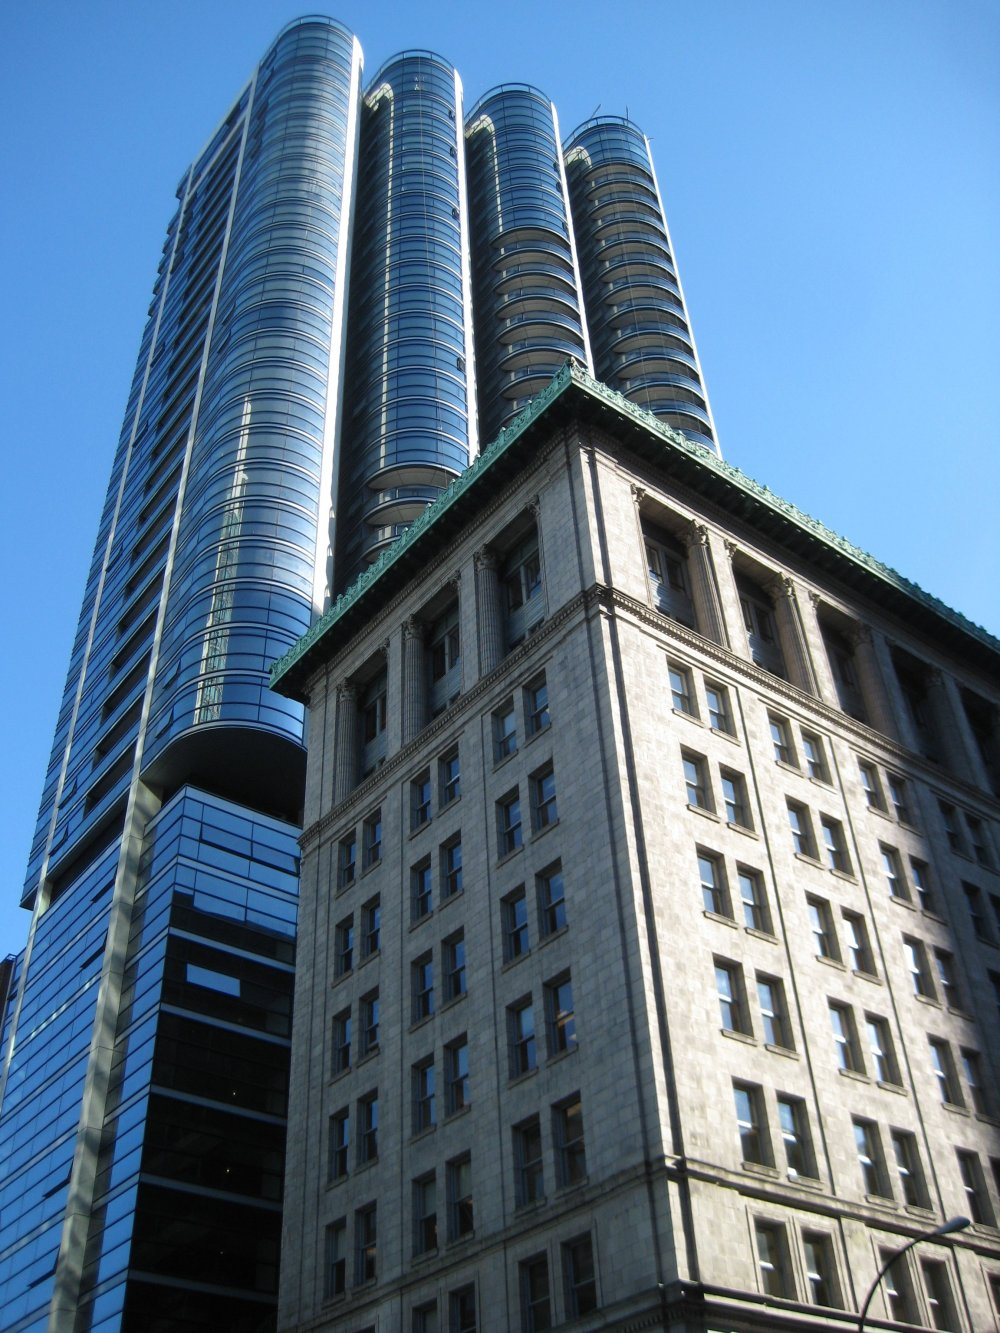 Jameson House - 838 West Hastings, Vancouver | Condo In ...